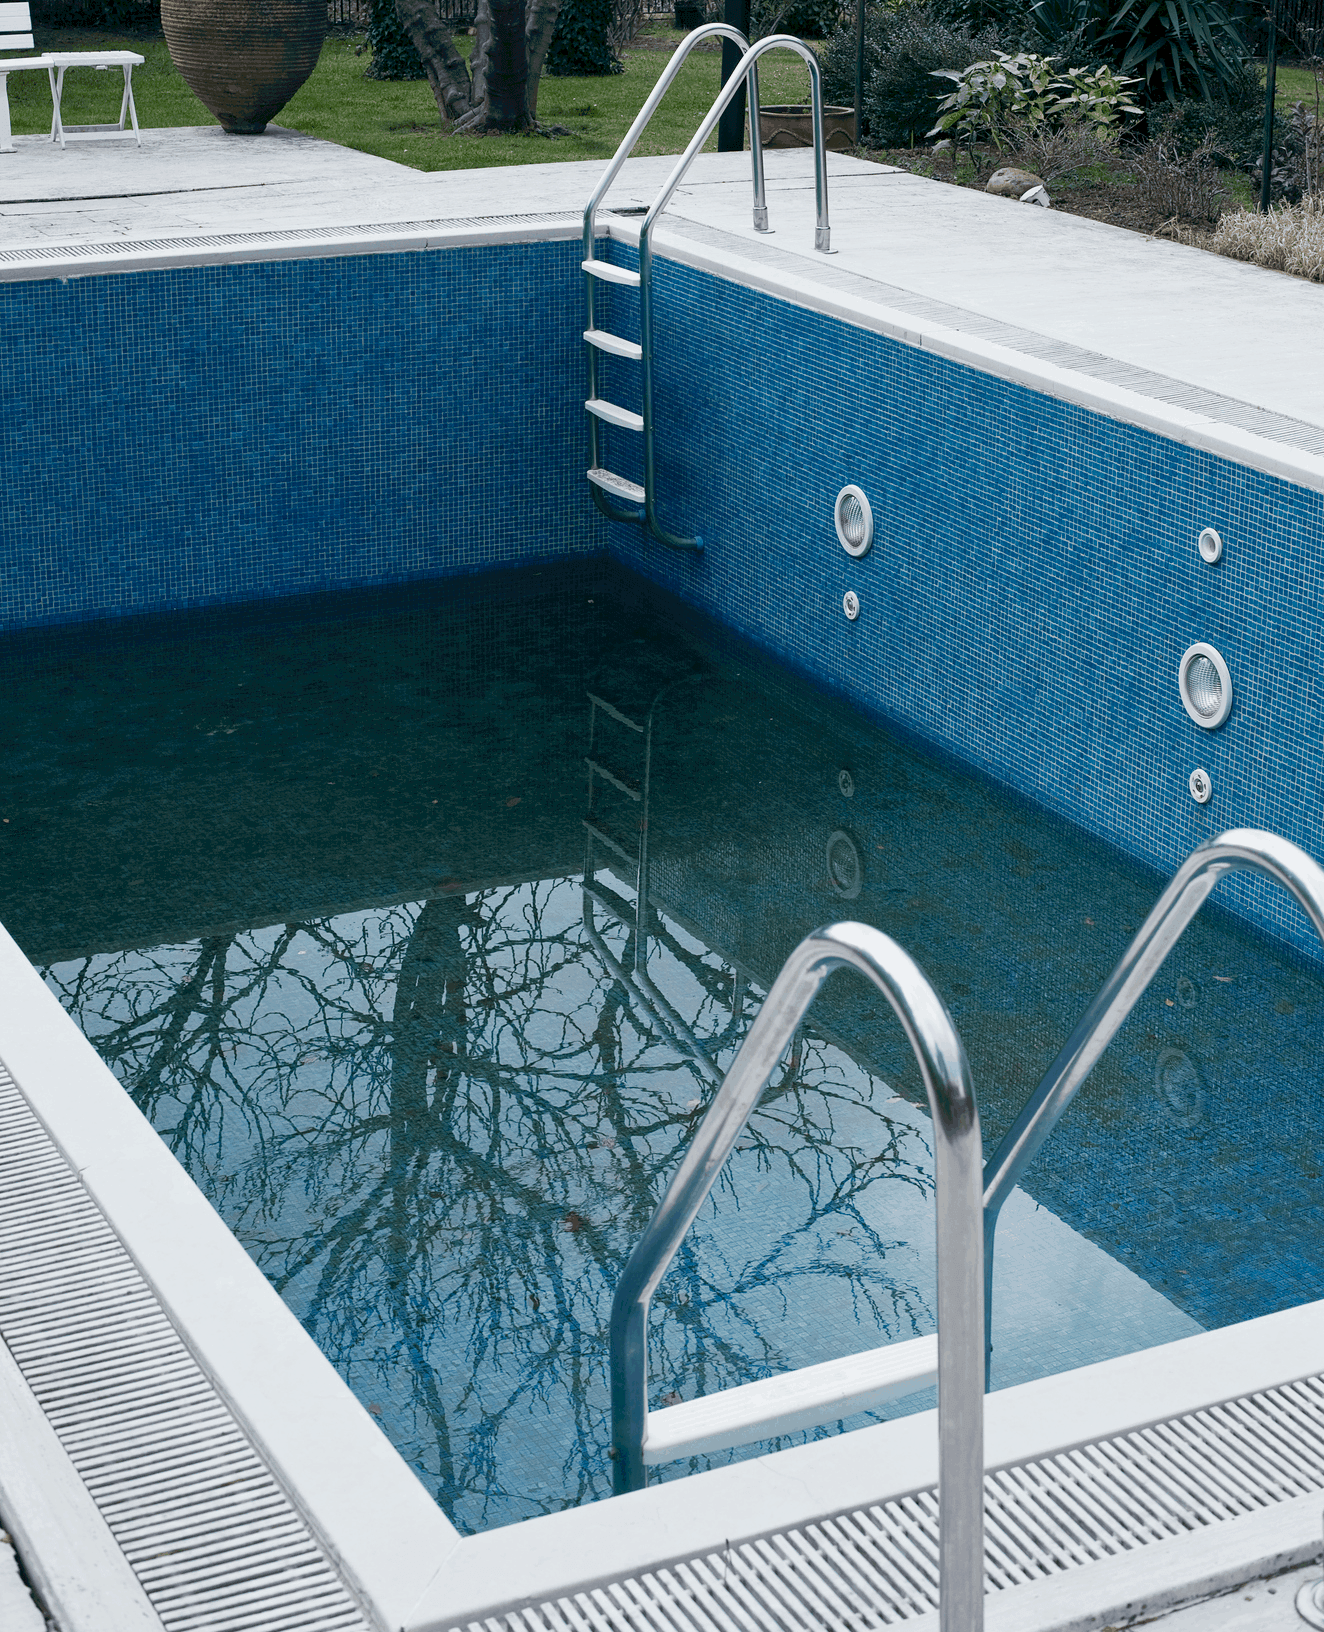 Pool leak detection Mitcham